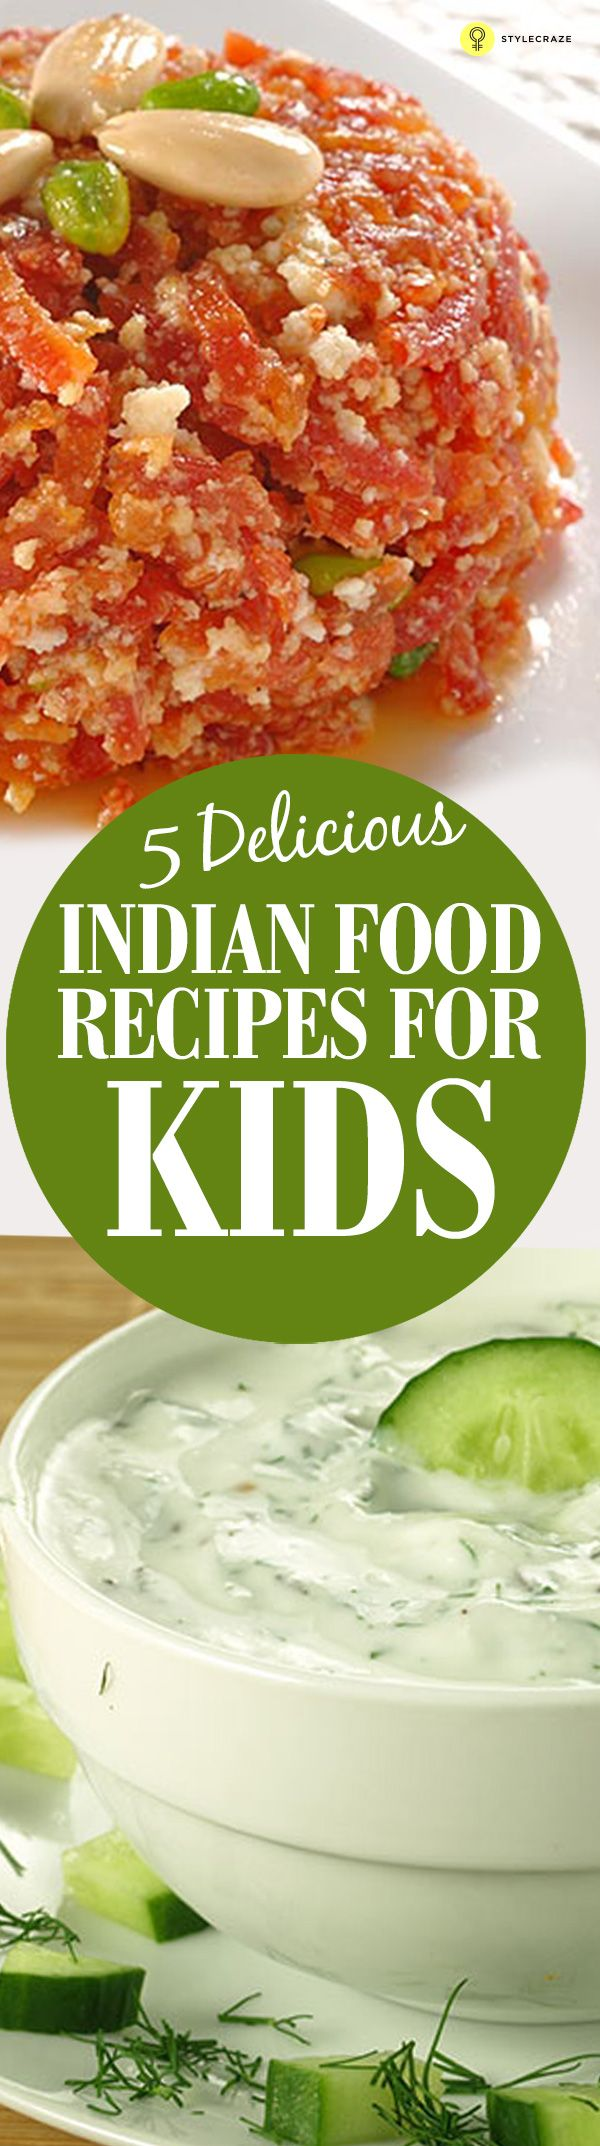 5 must try sanjeev kapoor recipes for kids sanjeev kapoor recipes 5 must try sanjeev kapoor recipes for kids sanjeev kapoor recipes and snacks forumfinder Choice Image